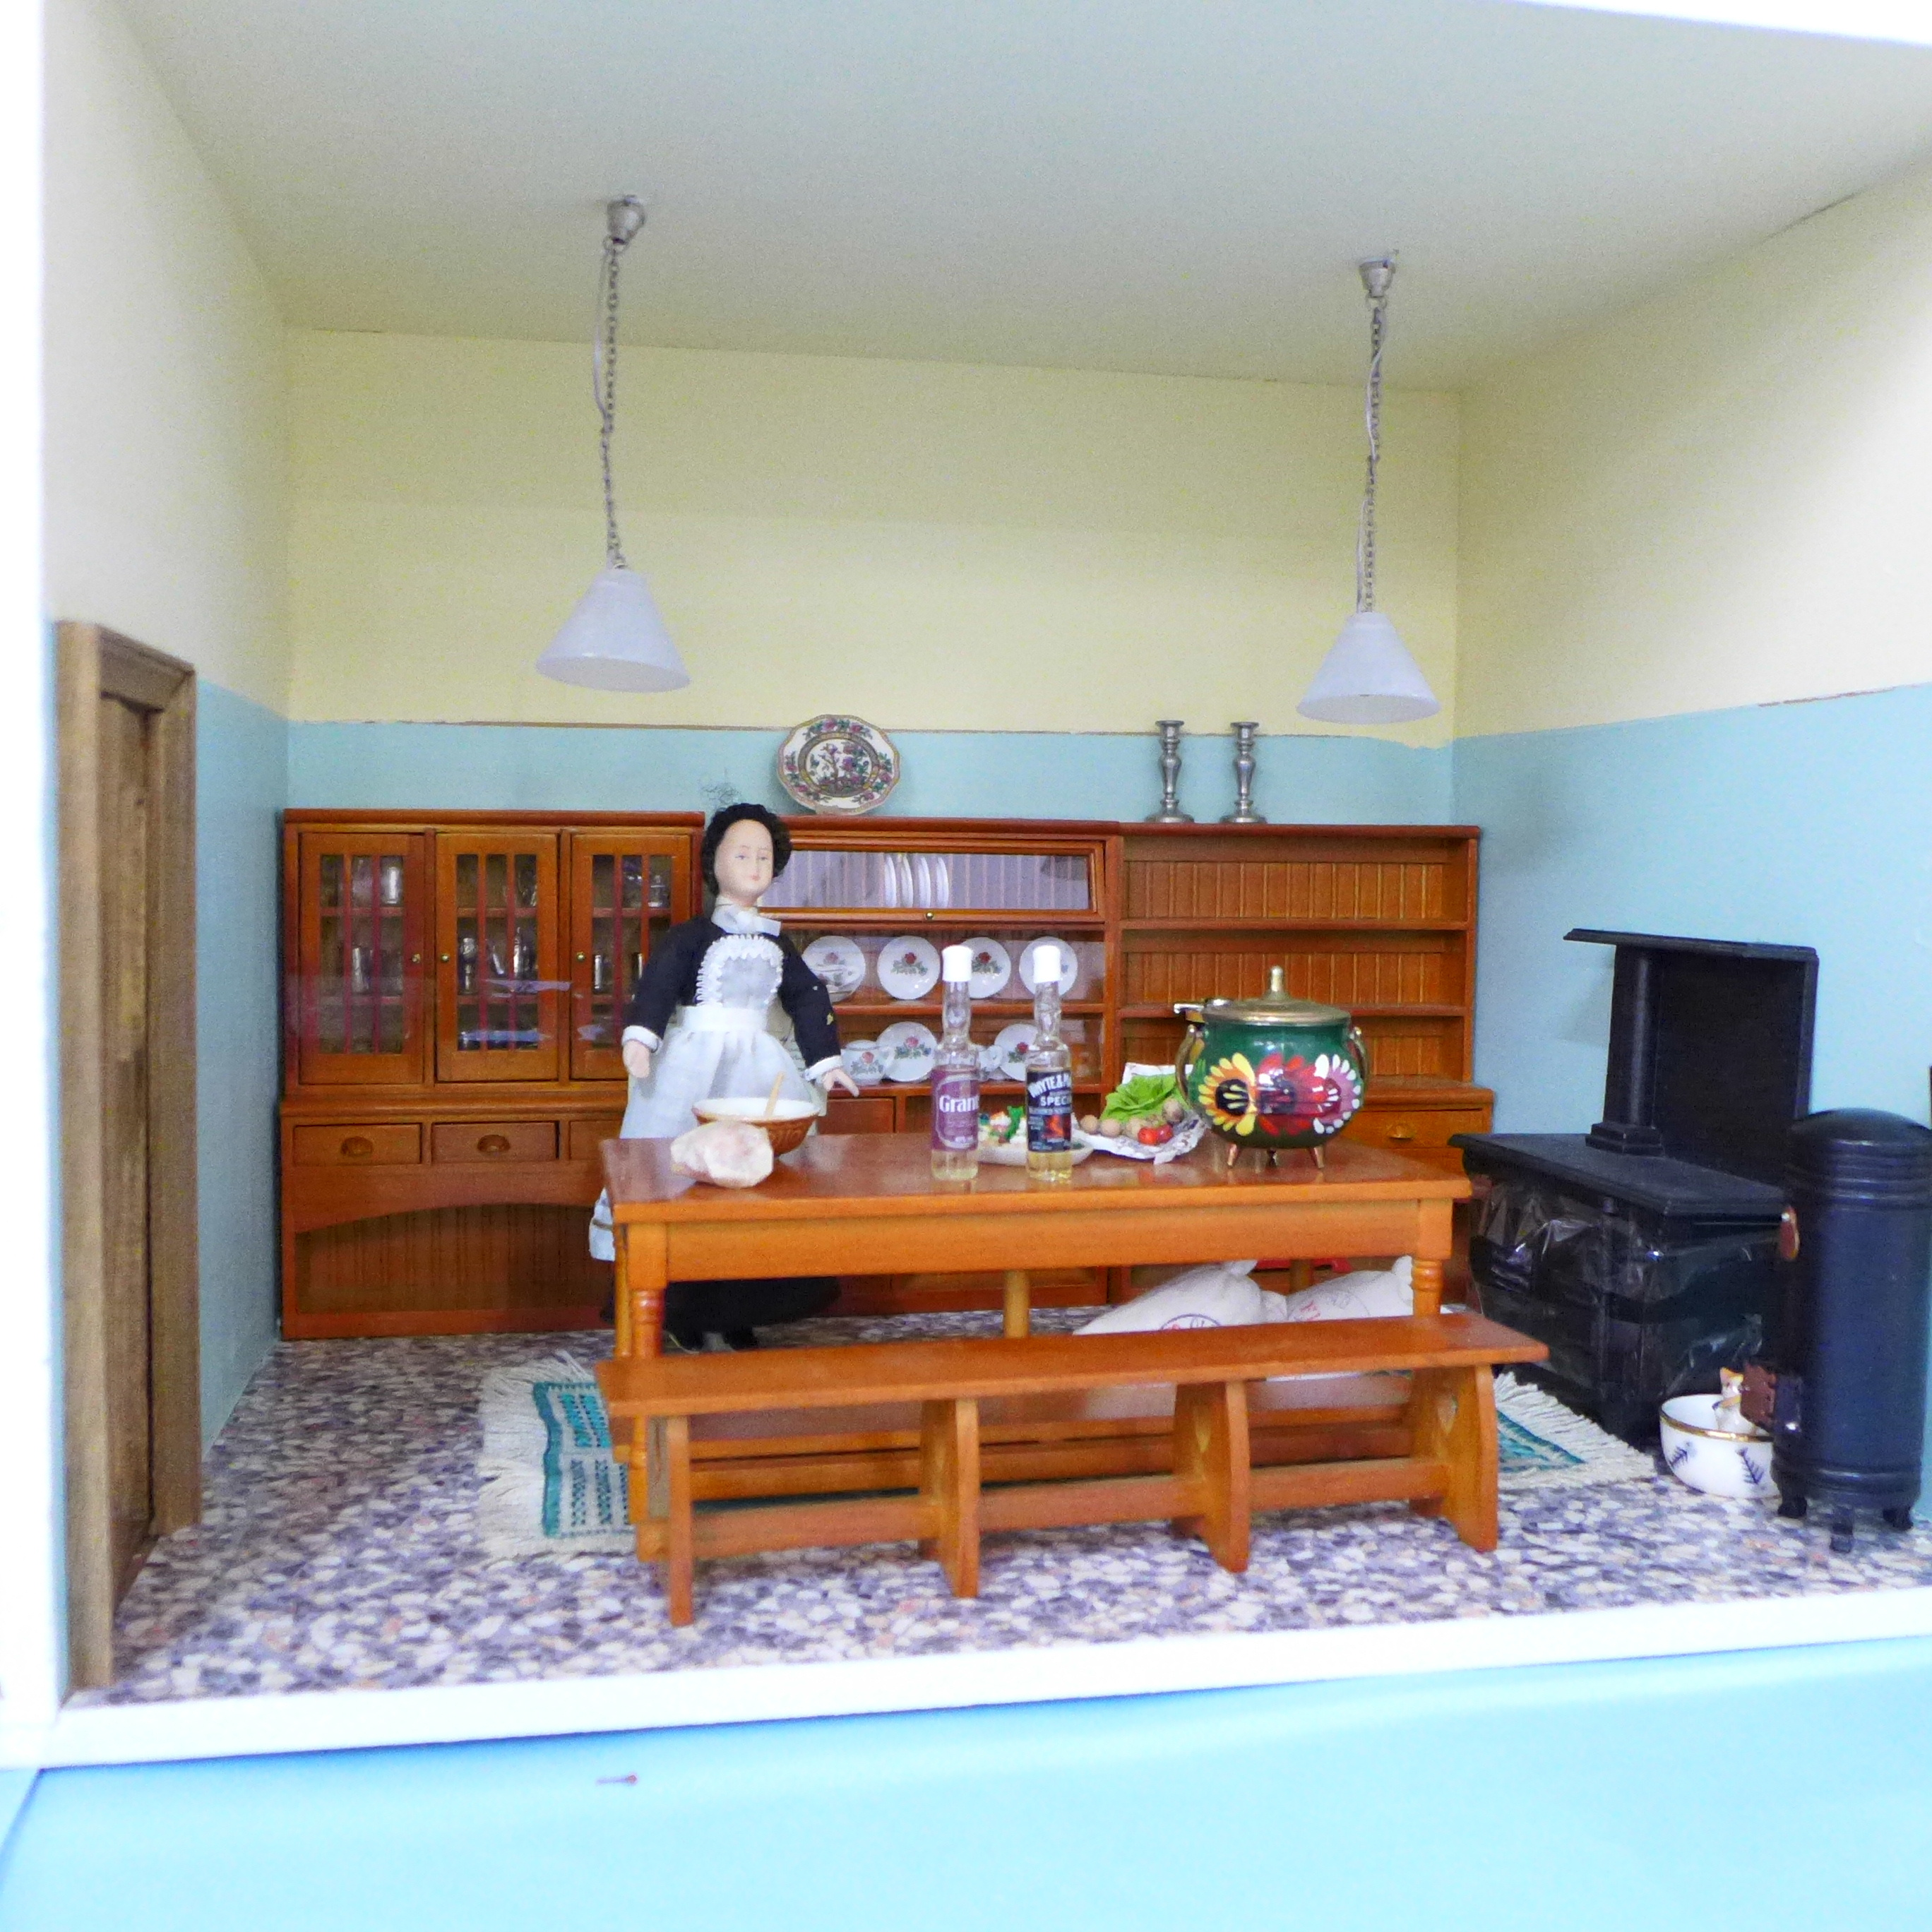 A Dolls House Emporiun Charles Rennie Makintosh-style Scottish House and Furniture. Assembled from a - Image 11 of 18